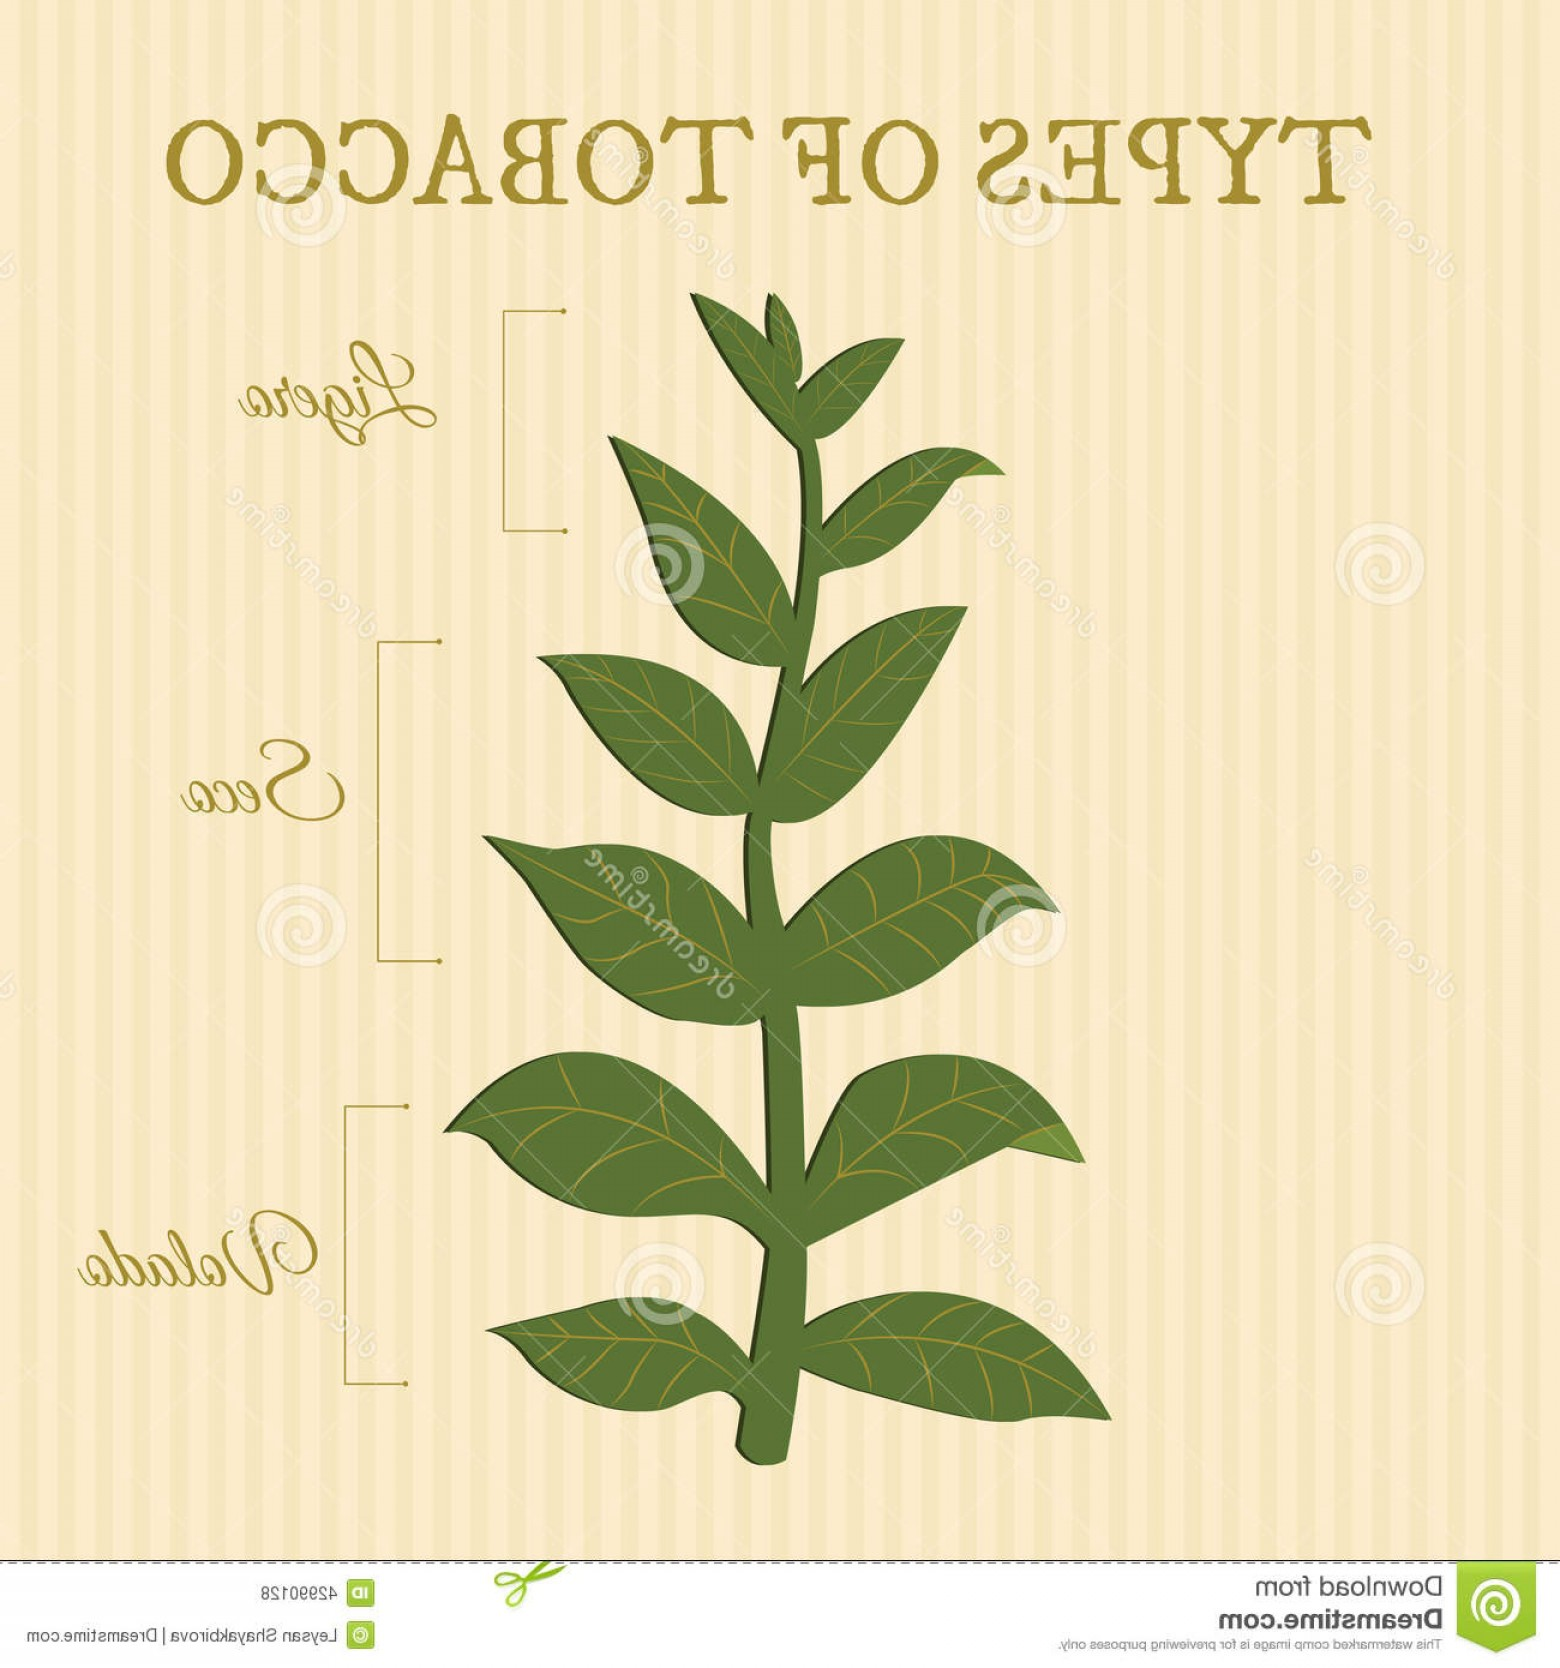 Loose- Leaf Tobacco Vector: Stock Illustration Types Tobacco Depending Position Leaves Plant Image